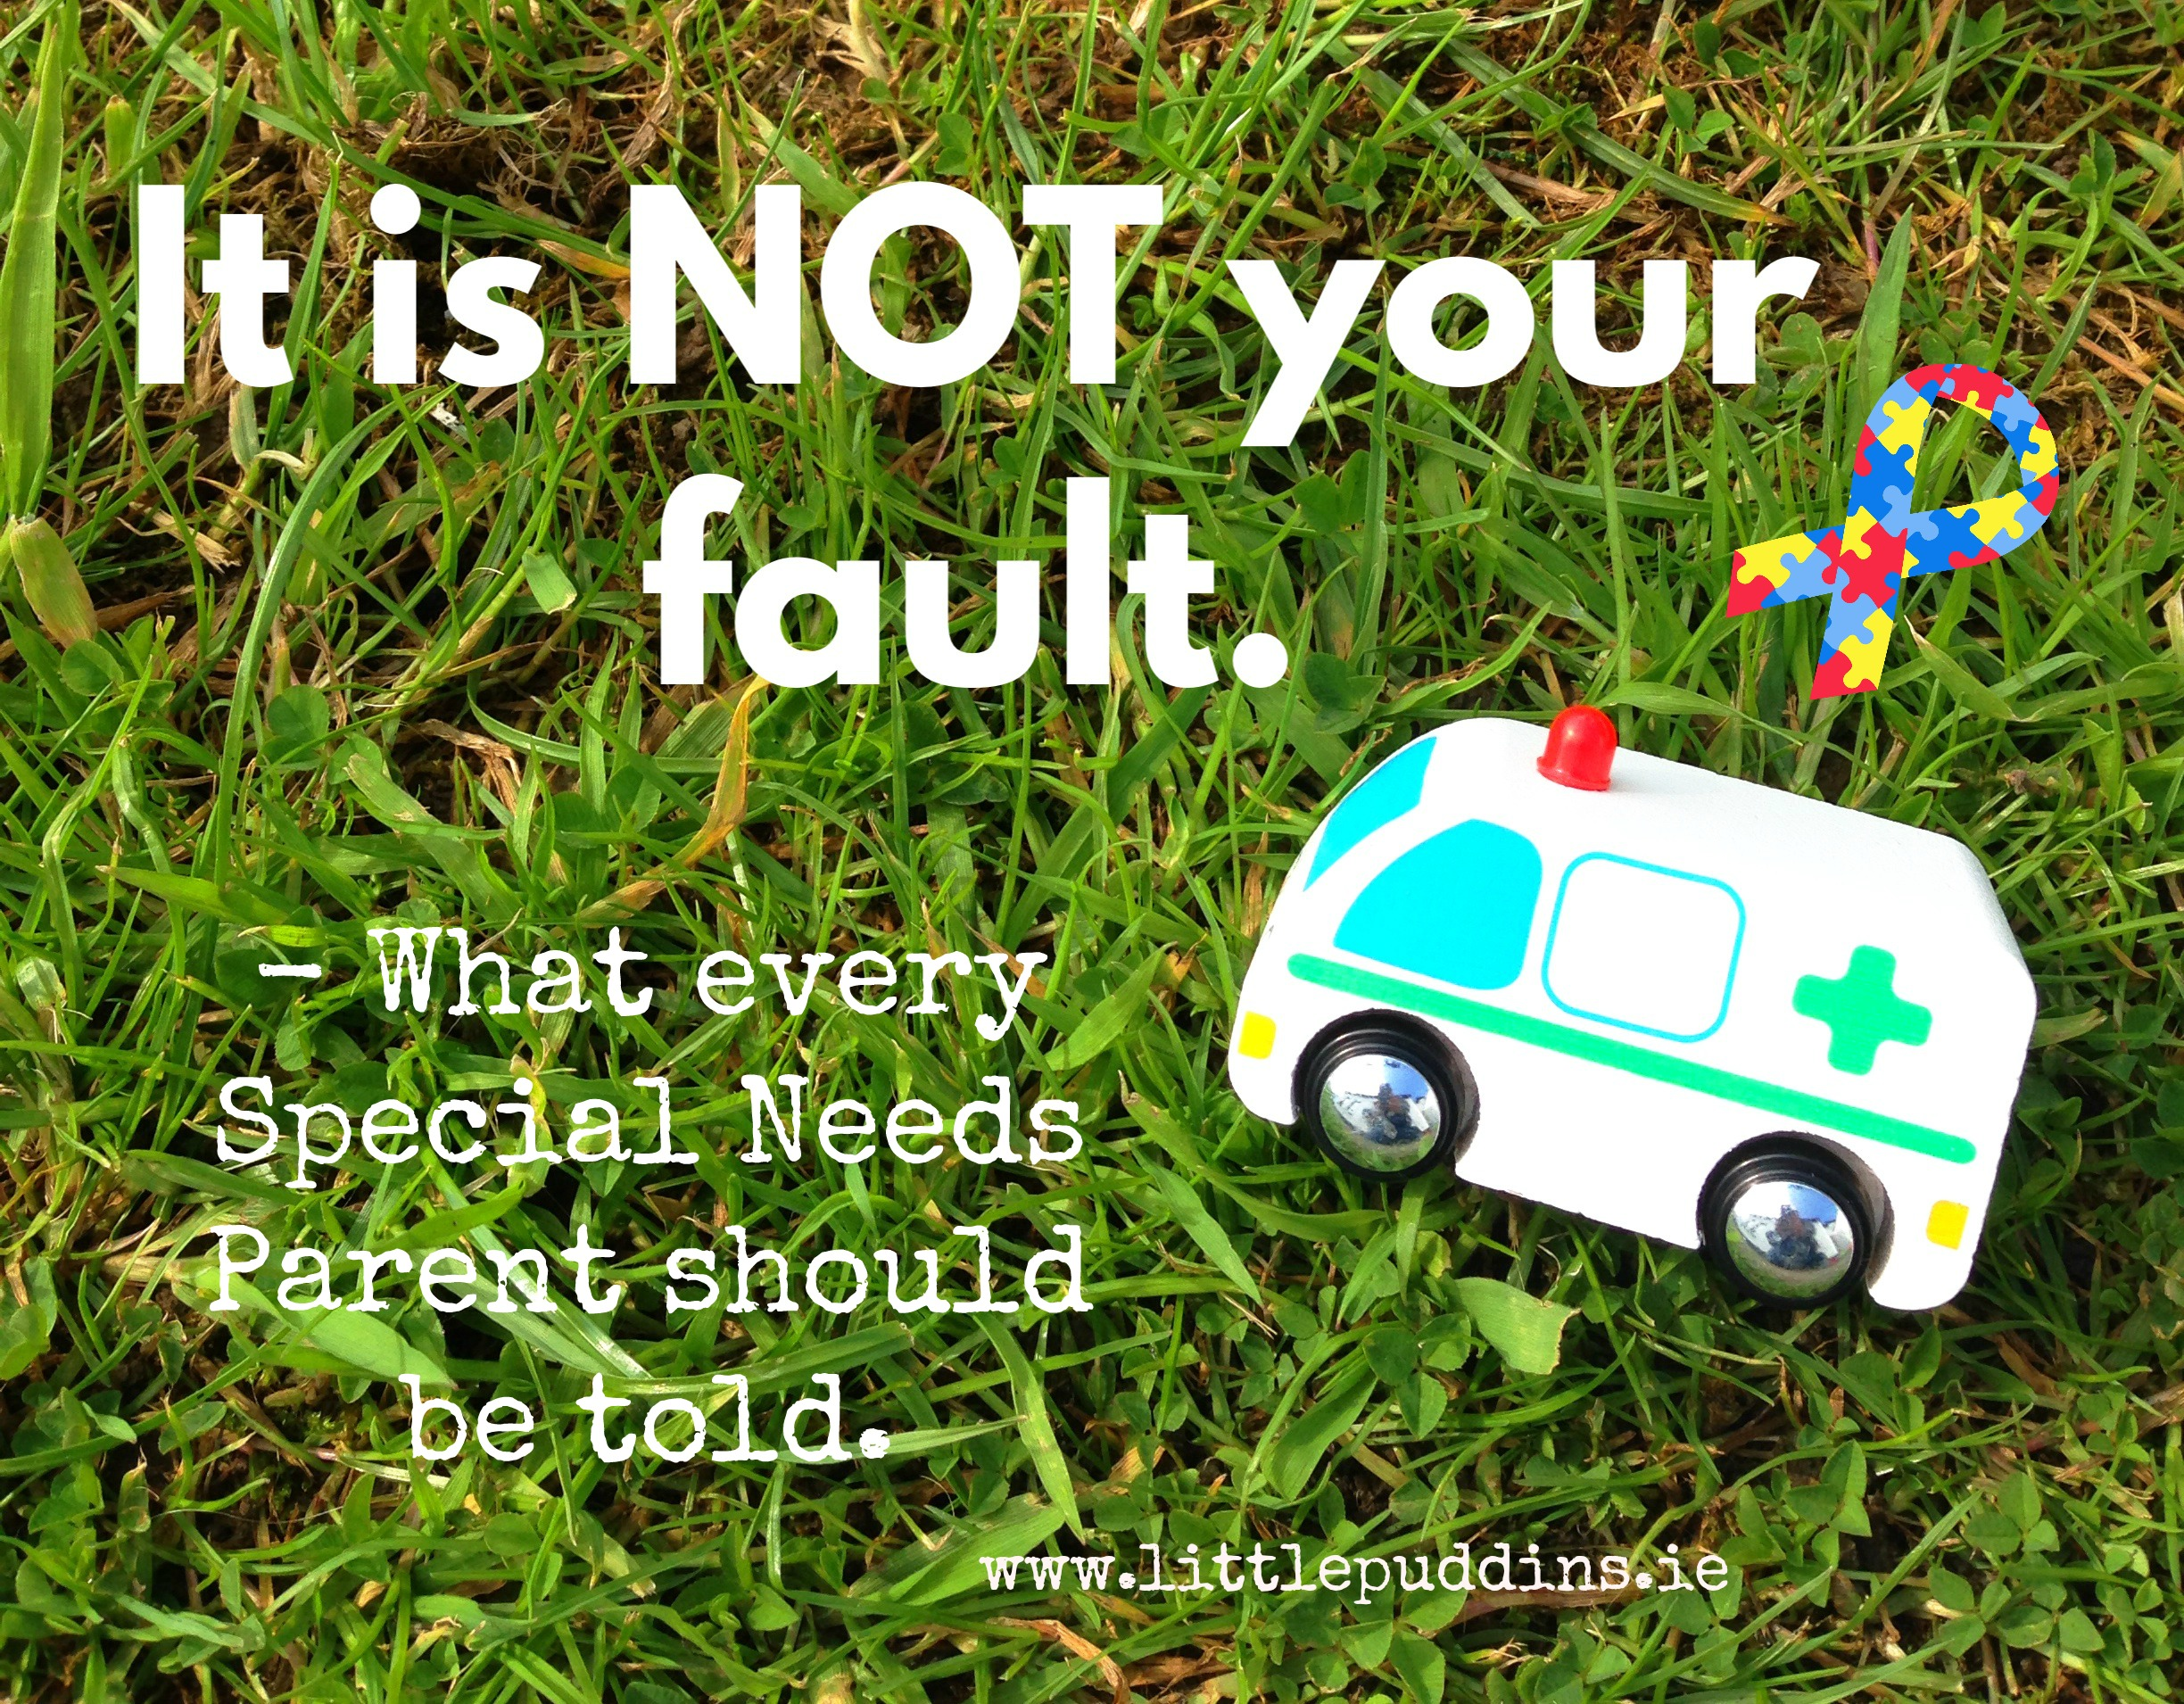 It is not your fault - what every special needs parent should be told